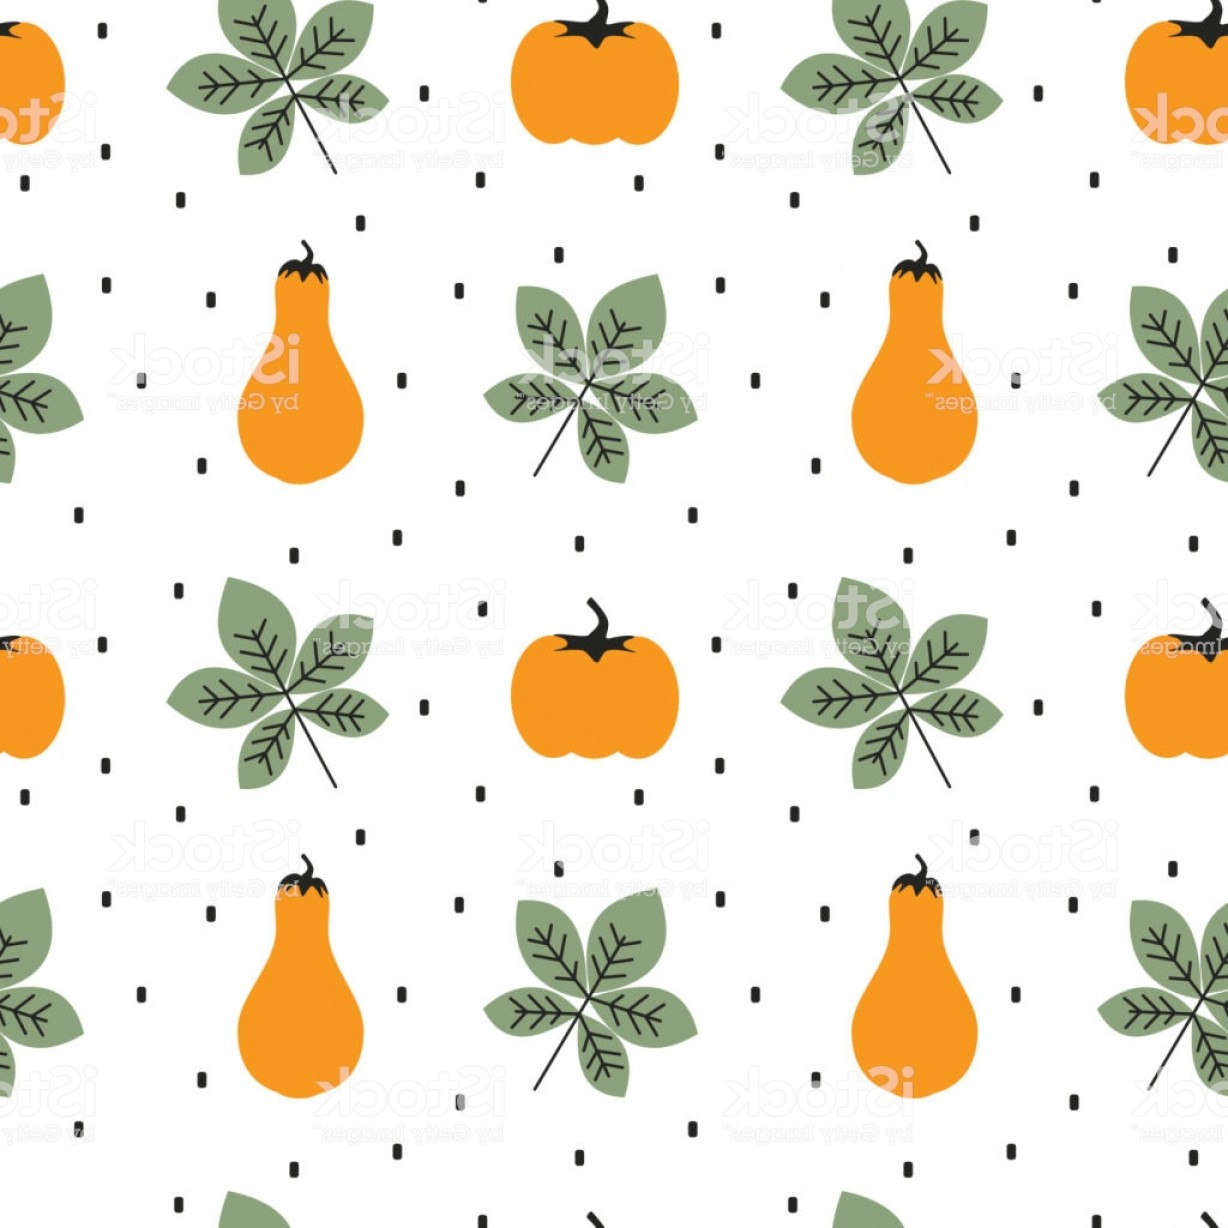 Autumn Seamless Vector: Cute Autumn Fall Seamless Vector Pattern Background Illustration With Pumpkins And Gm